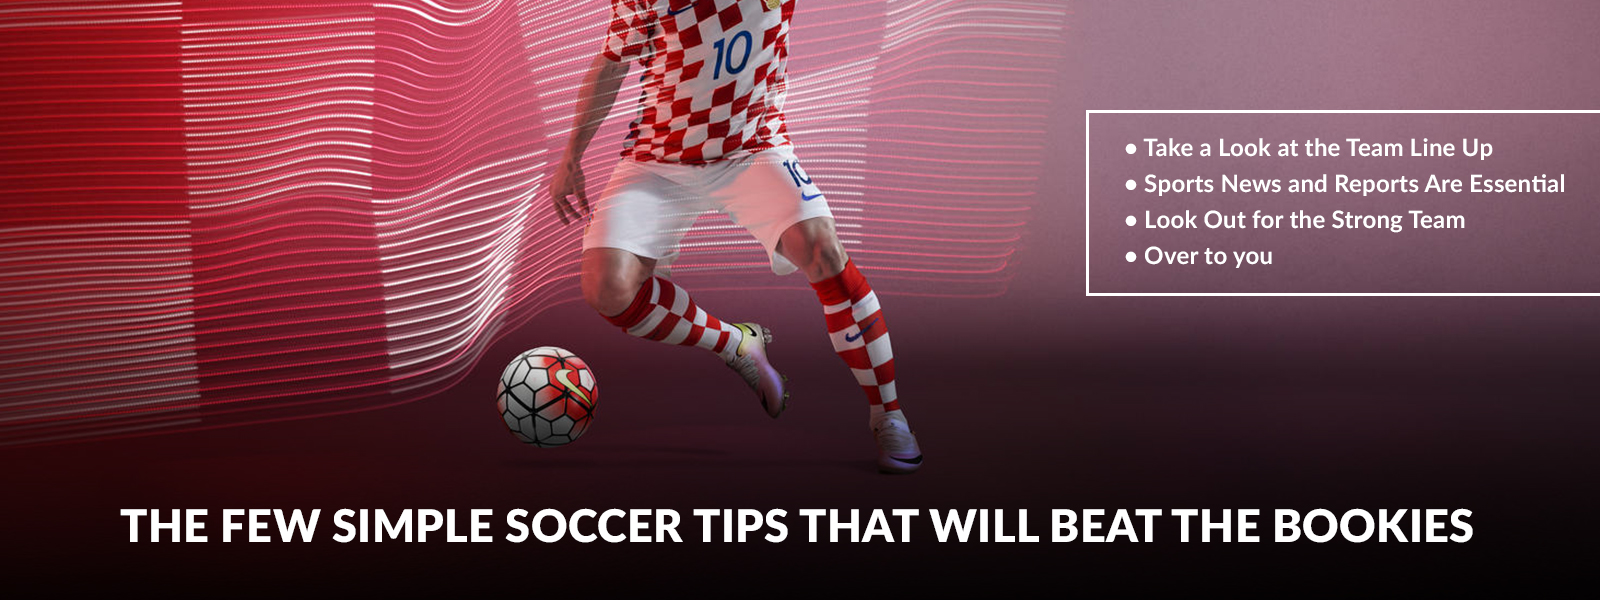 3 Simple Betting Tips To Help You Beat The Bookies